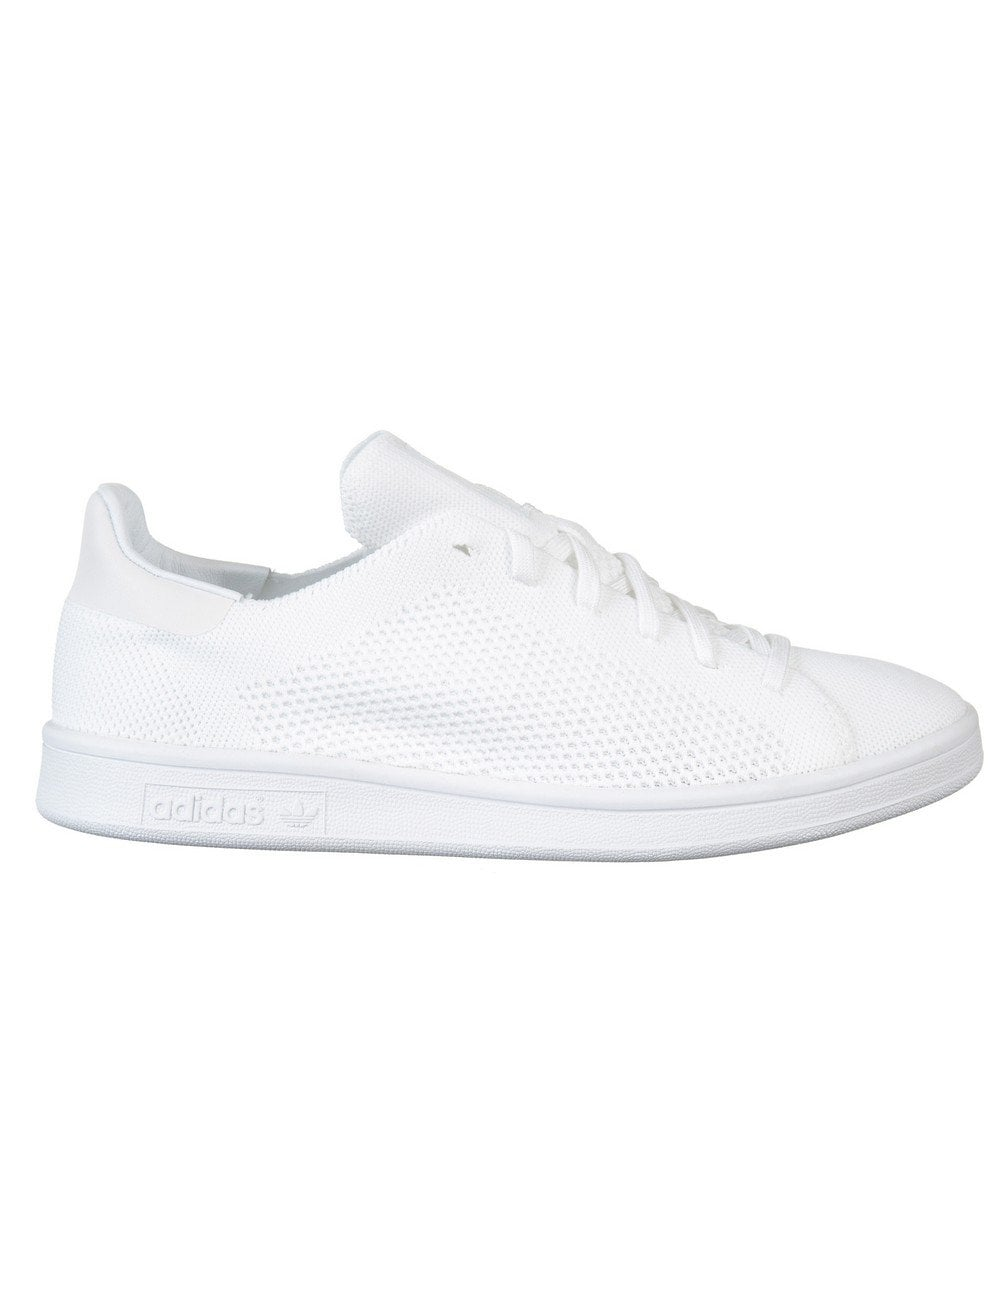 separation shoes bab8c a2e19 Stan Smith Primeknit Shoes - White/White